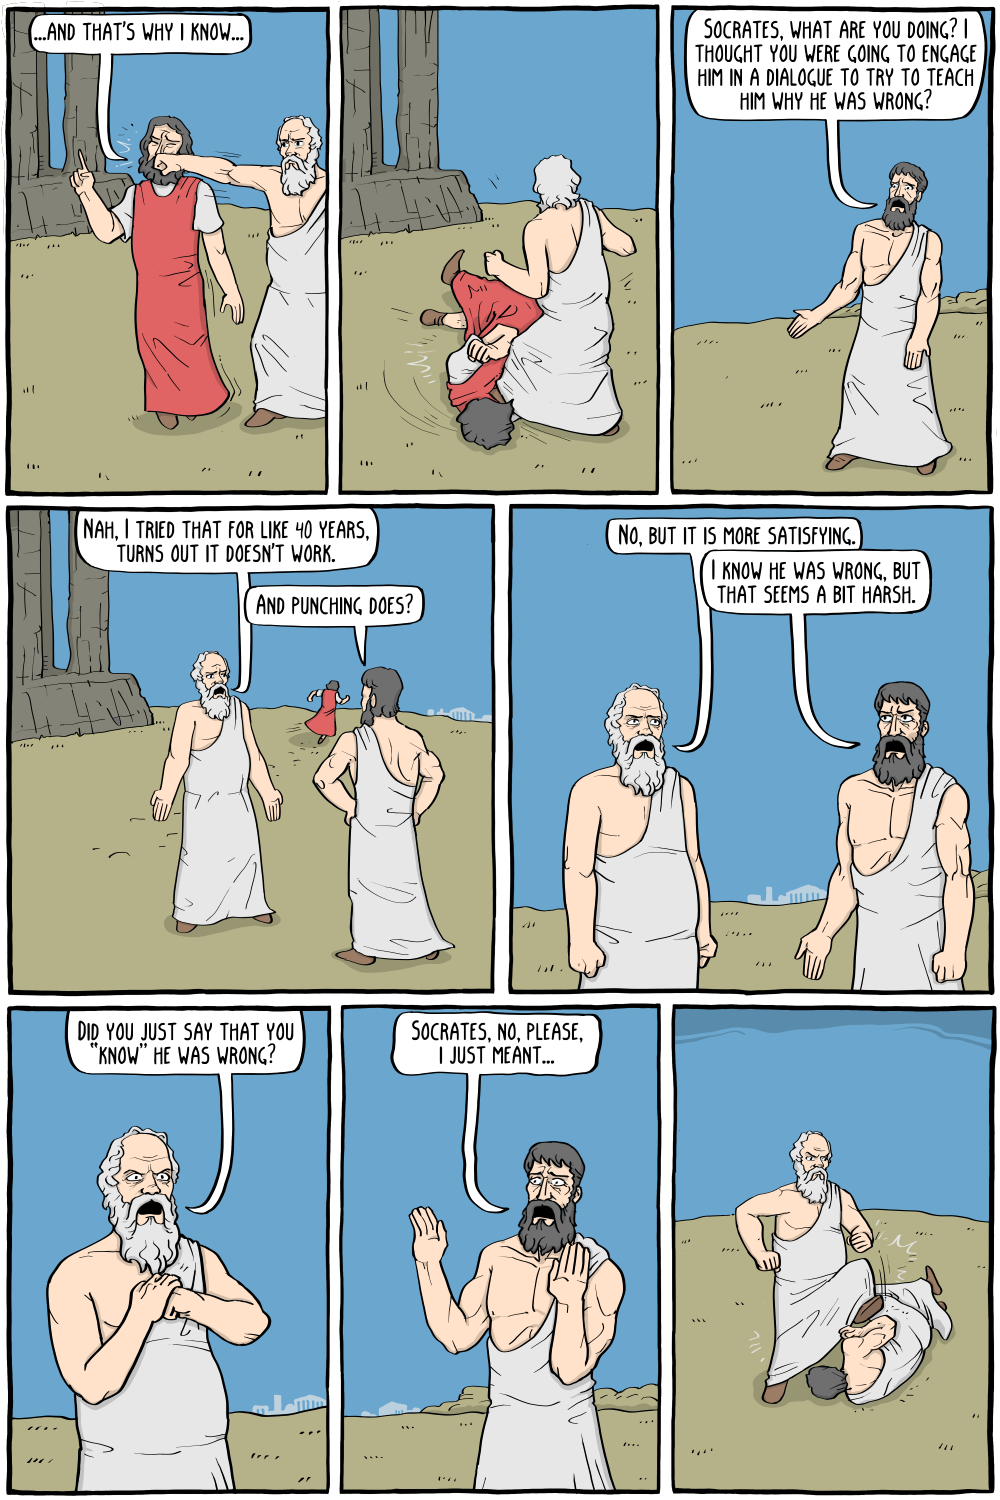 """Protagoras: """"...and that's why I know..."""" Description: Socrates interrupts him by punching him, then continues to kick him on the ground.  Plato: """"Socrates, what are you doing? I thought you were going to engage him in a dialogue to try to teach him why he was wrong? """"  Socrates: """"Nah, I tried that for like 40 years, turns out it doesn't work."""" Plato: """"And punching does?""""  Socrates: """"No, but it is more satisfying."""" Plato: """"I know he was wrong, but that seems a bit harsh.""""  Socrates, narrowing his eyes: """"Did you just say that you """"know"""" he was wrong? """" Plato, backing off: """"Socrates, no, please, i just meant...""""  Description: Socrates is now kicking Plato on the ground."""